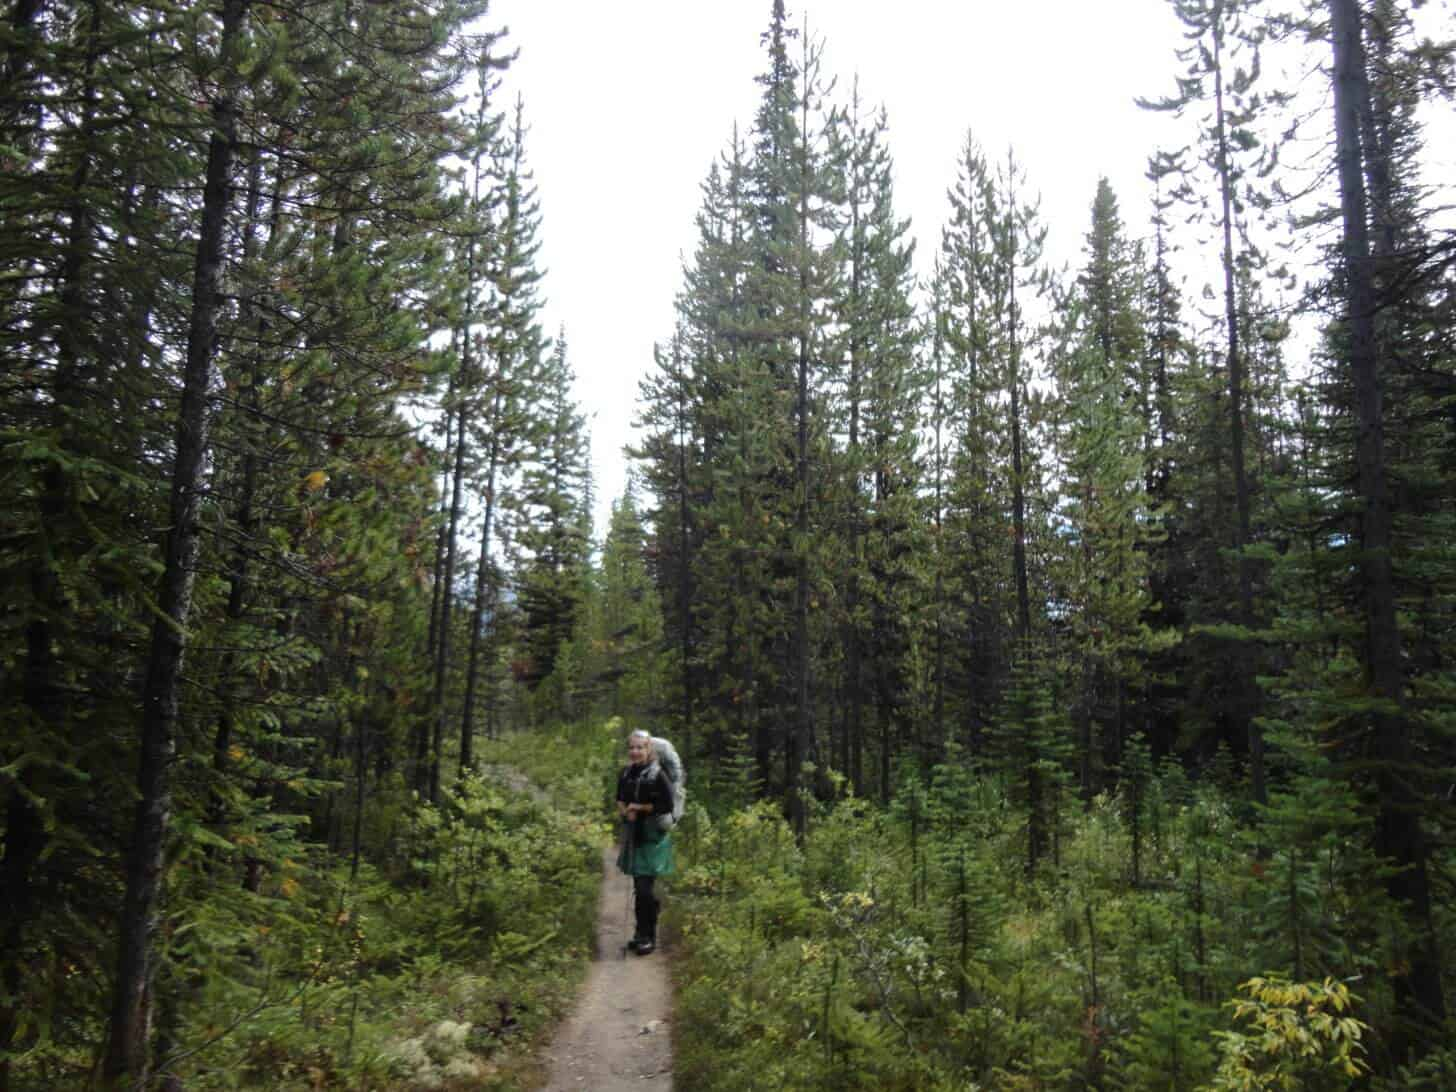 Skyline Trail: The Skyline Trail winds through the boreal forest, gradually gaining elevation.